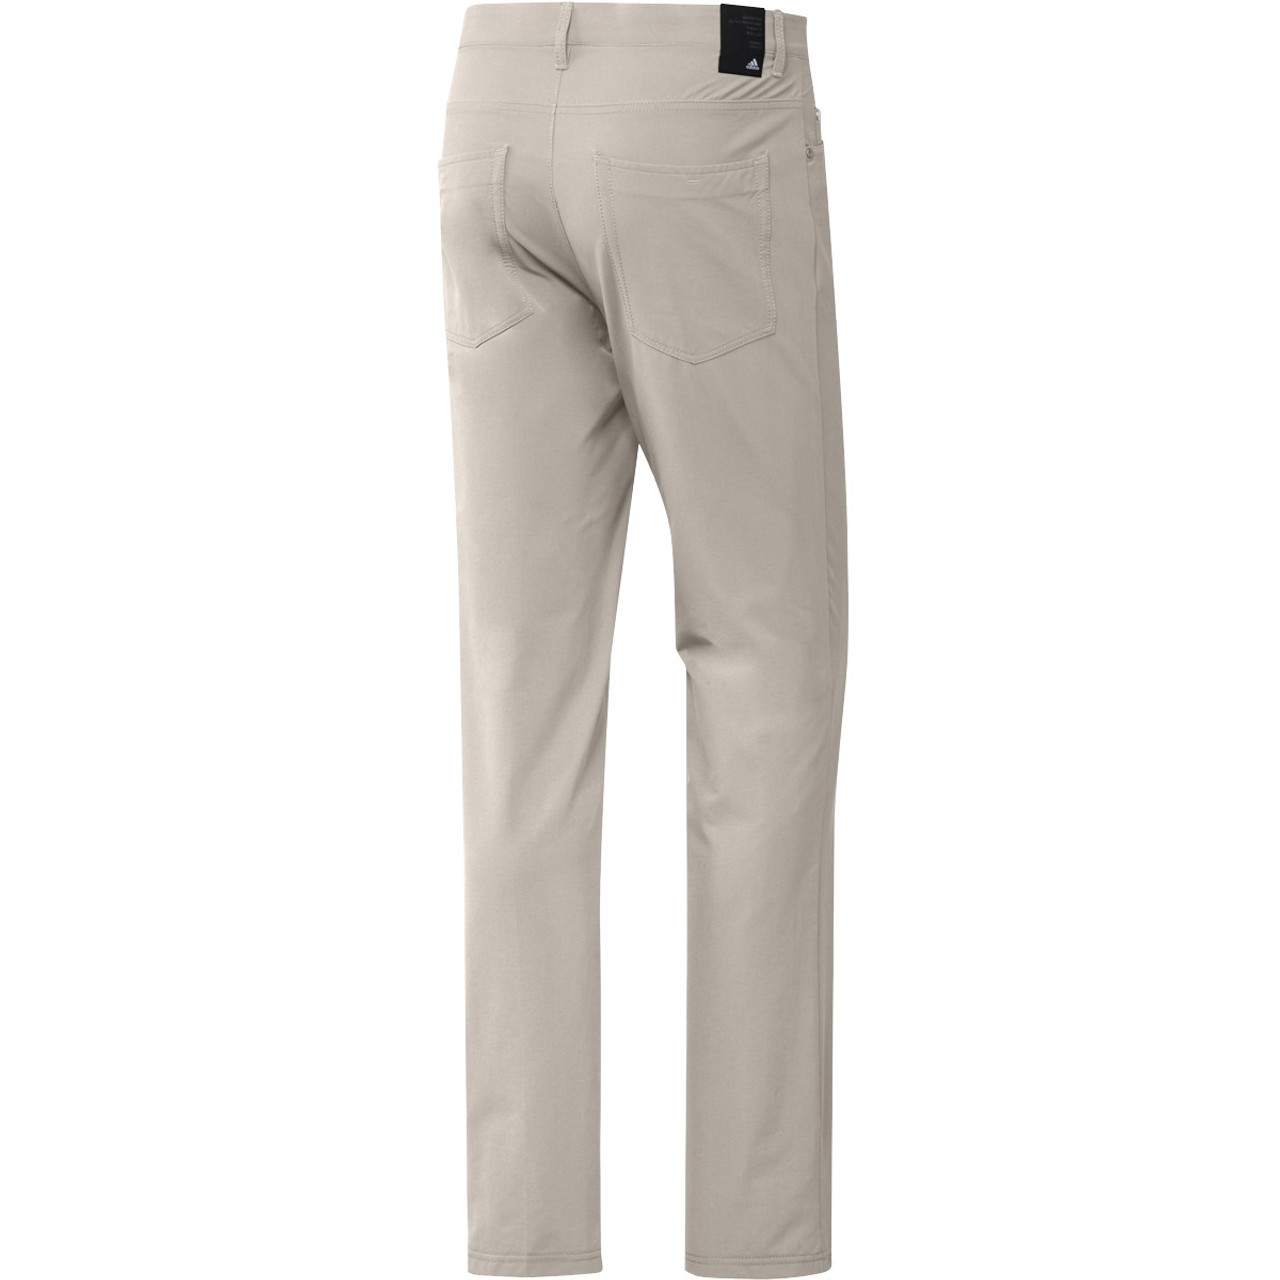 Adidas GO-TO Five Pocket Pants- Clear Brown